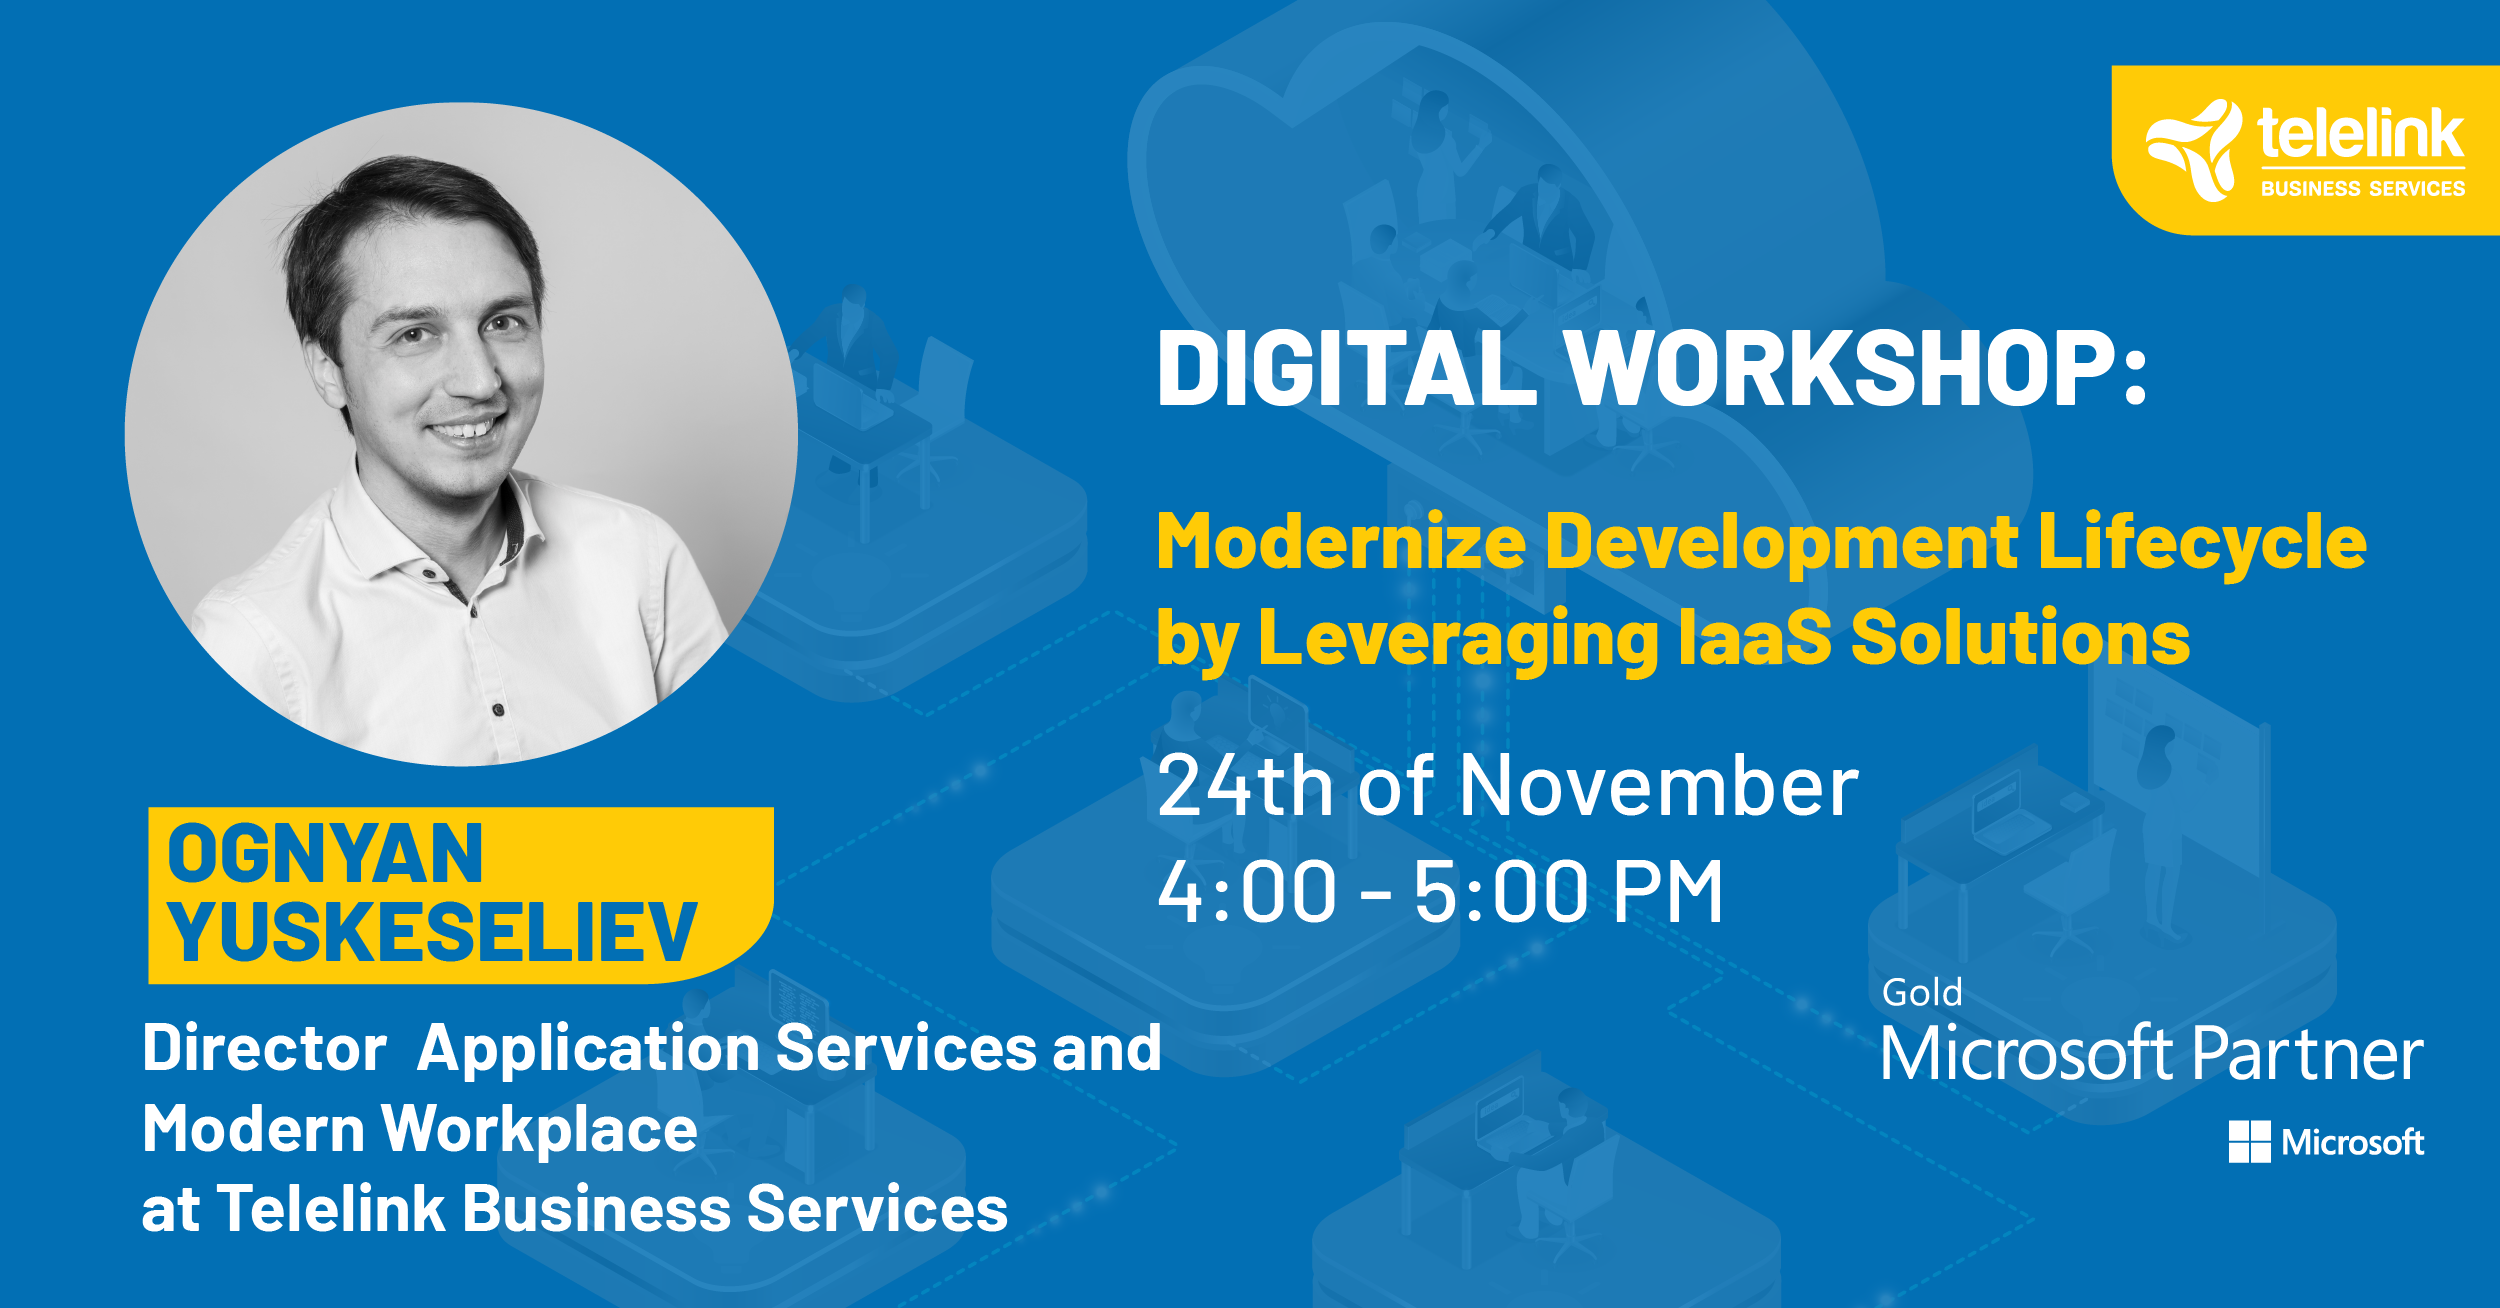 Modernize Development Lifecycle by Leveraging IaaS Solutions